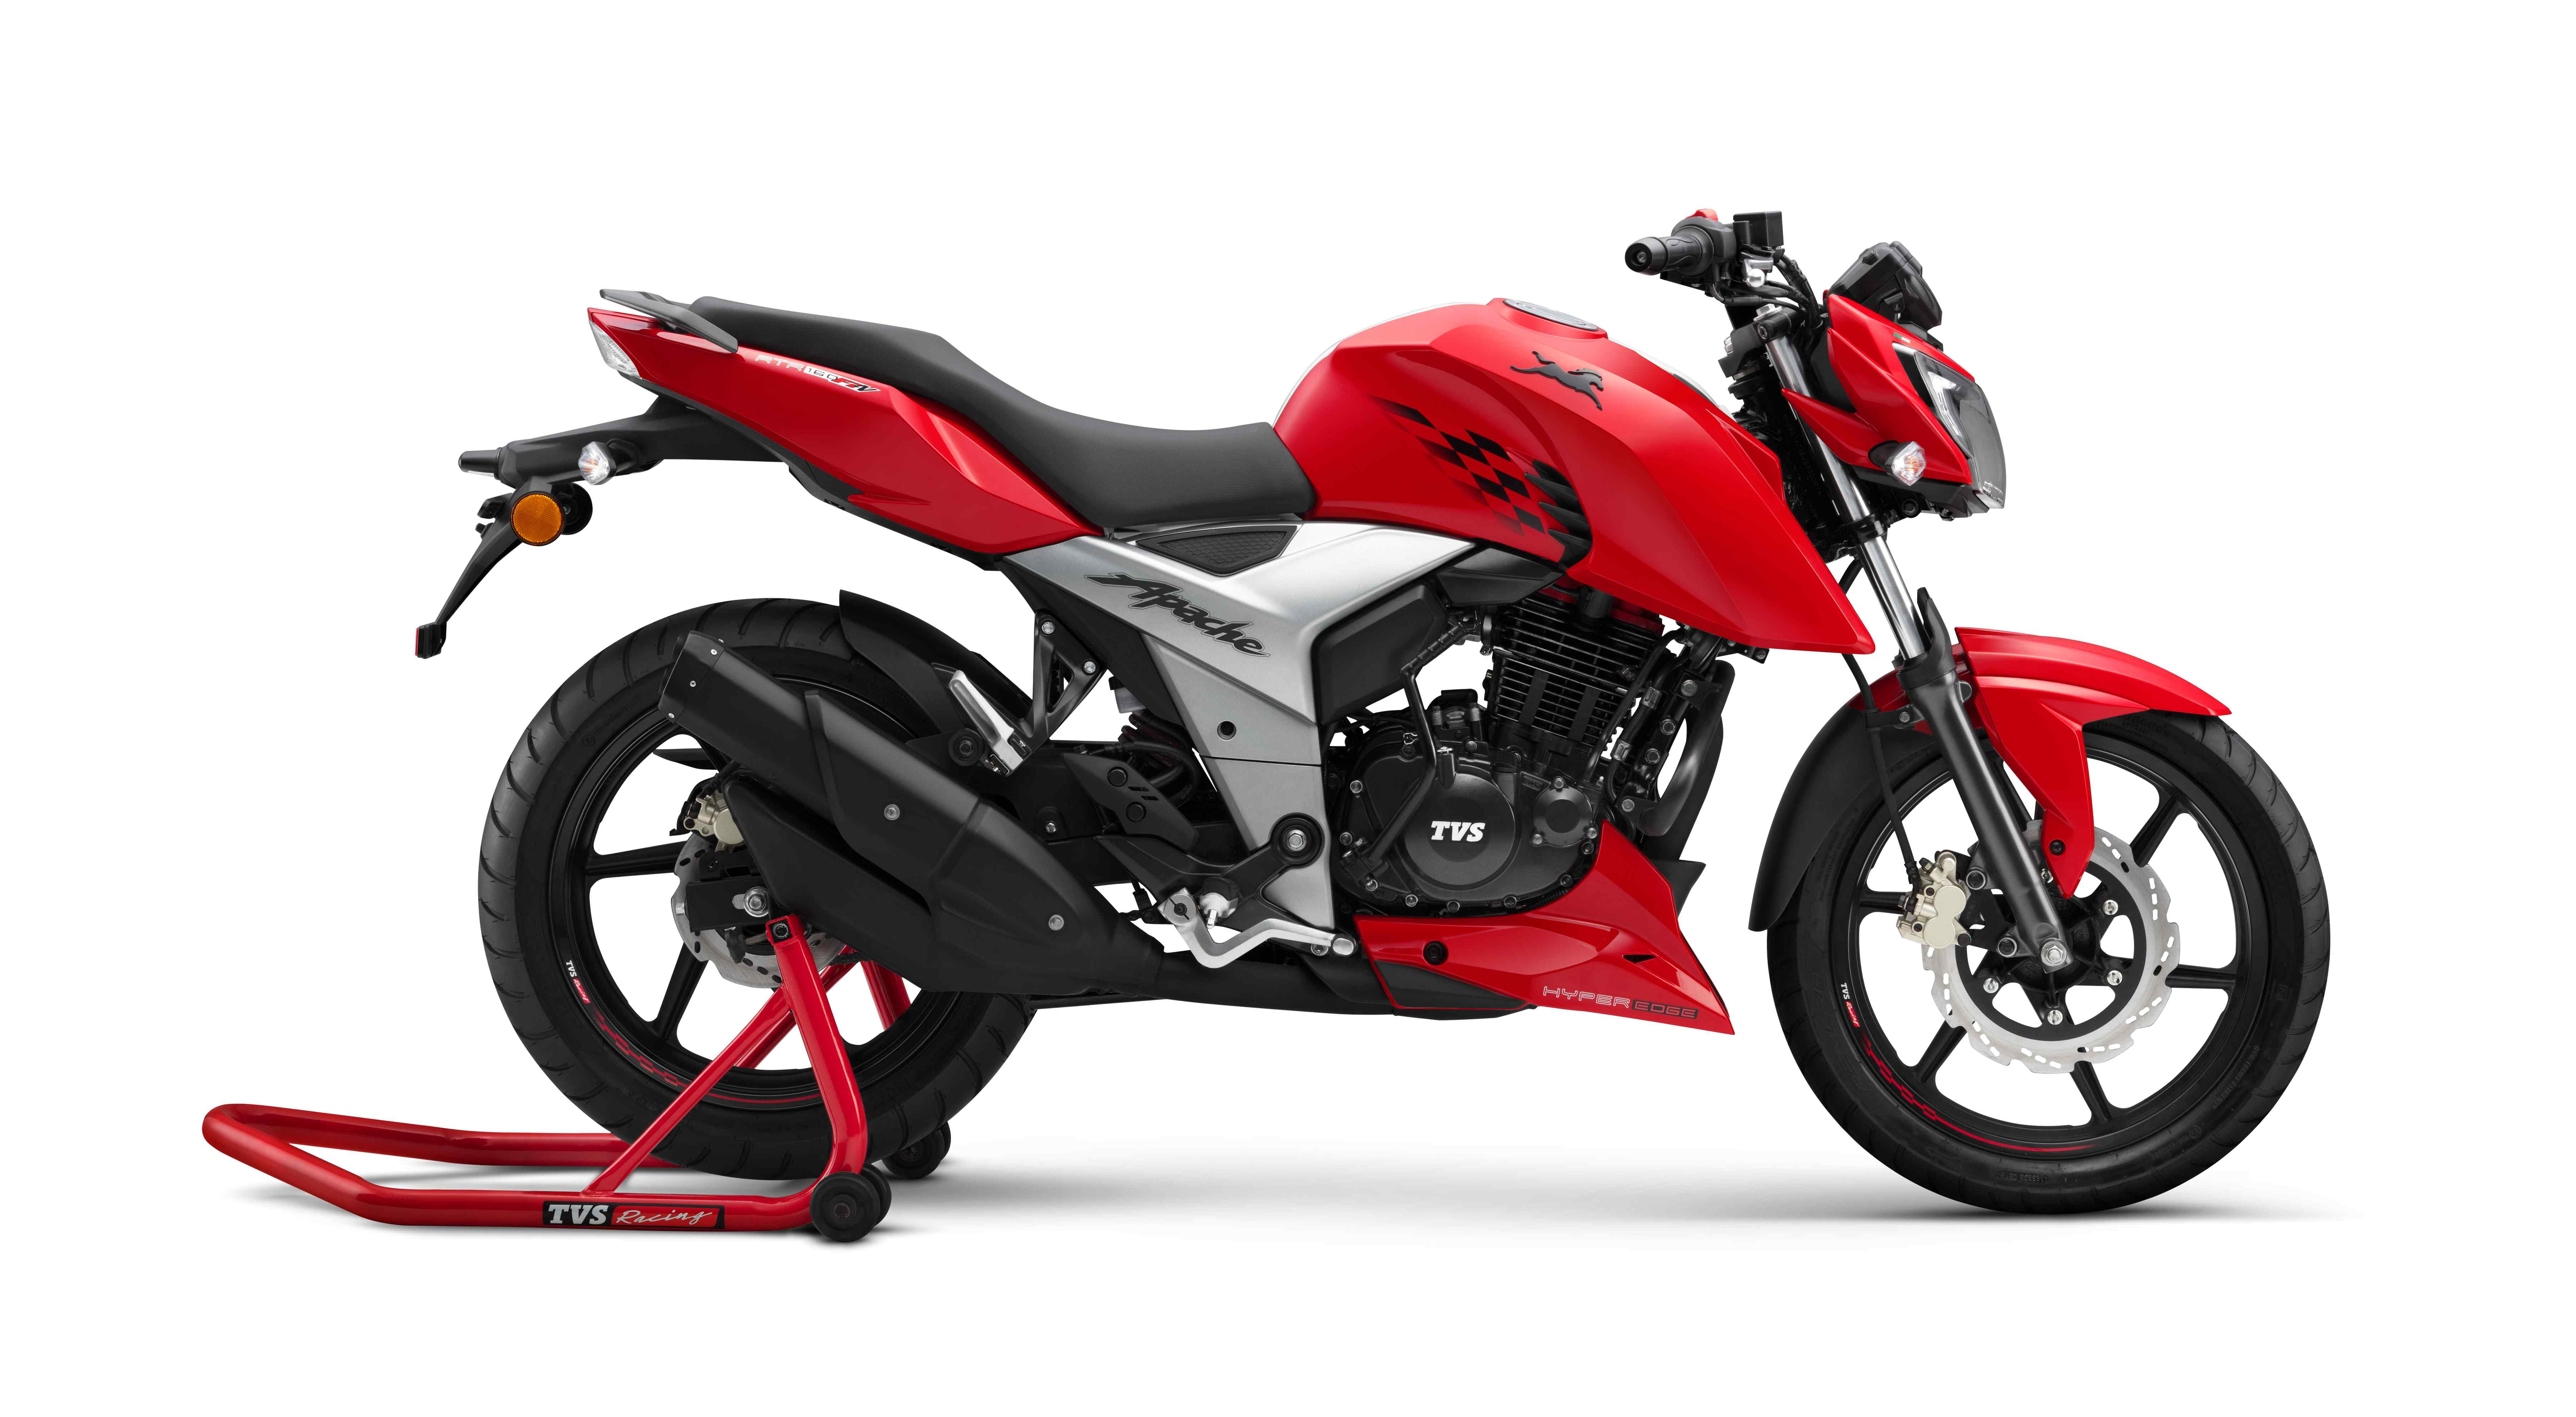 apache rtr 160 review, apache rtr 160 specifications